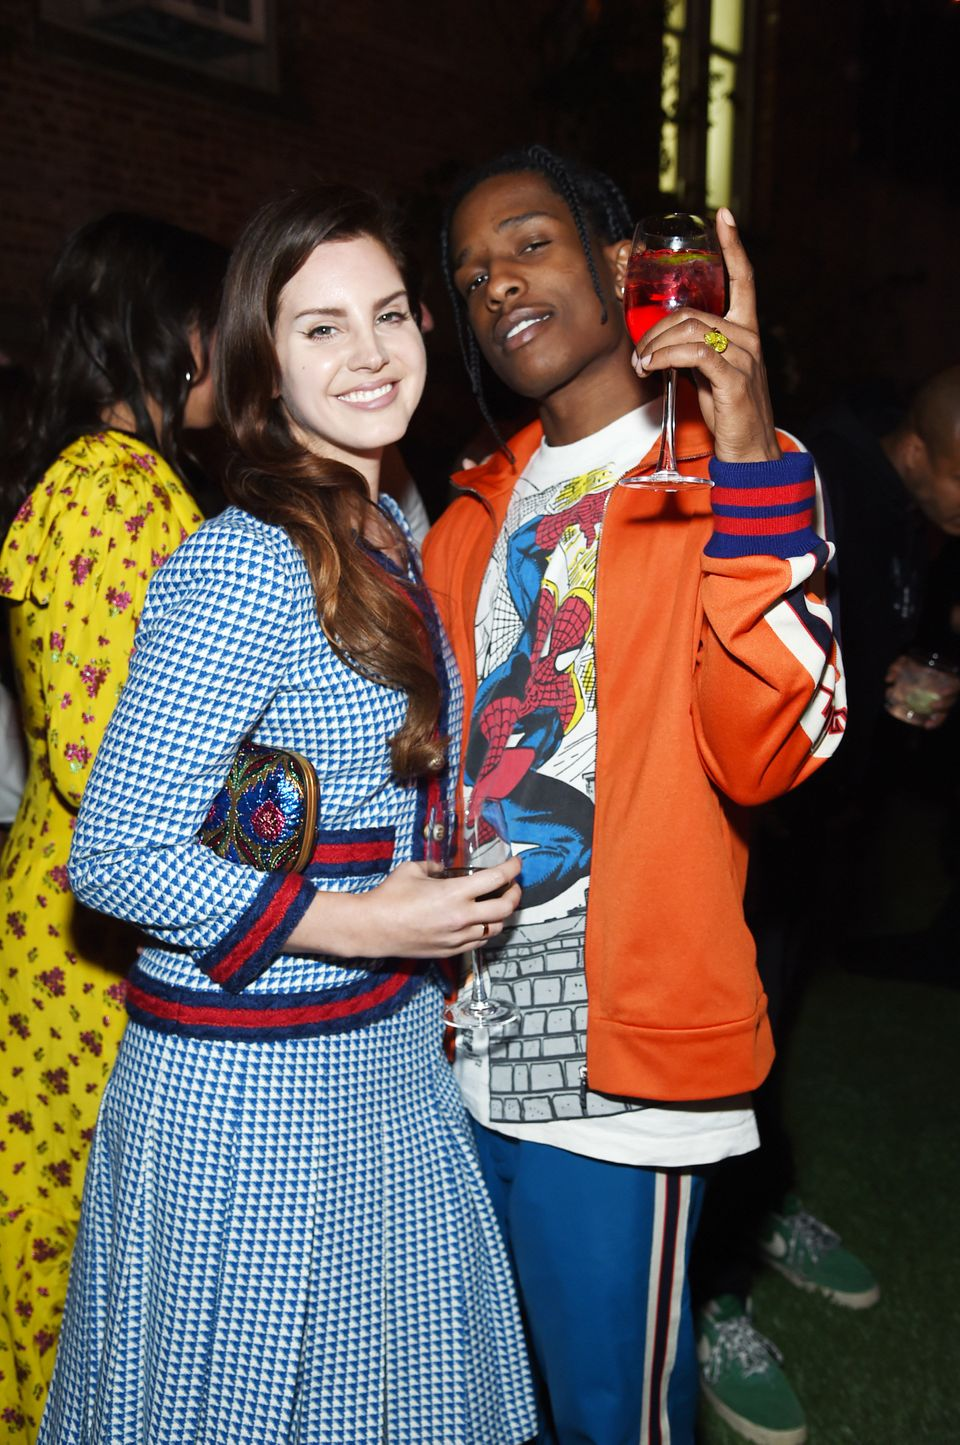 Lana Del Ray and A$AP Rocky attend the Gucci Bloom Fragrance Launch at MoMA PS.1 on May 2, 2017 in New York City.